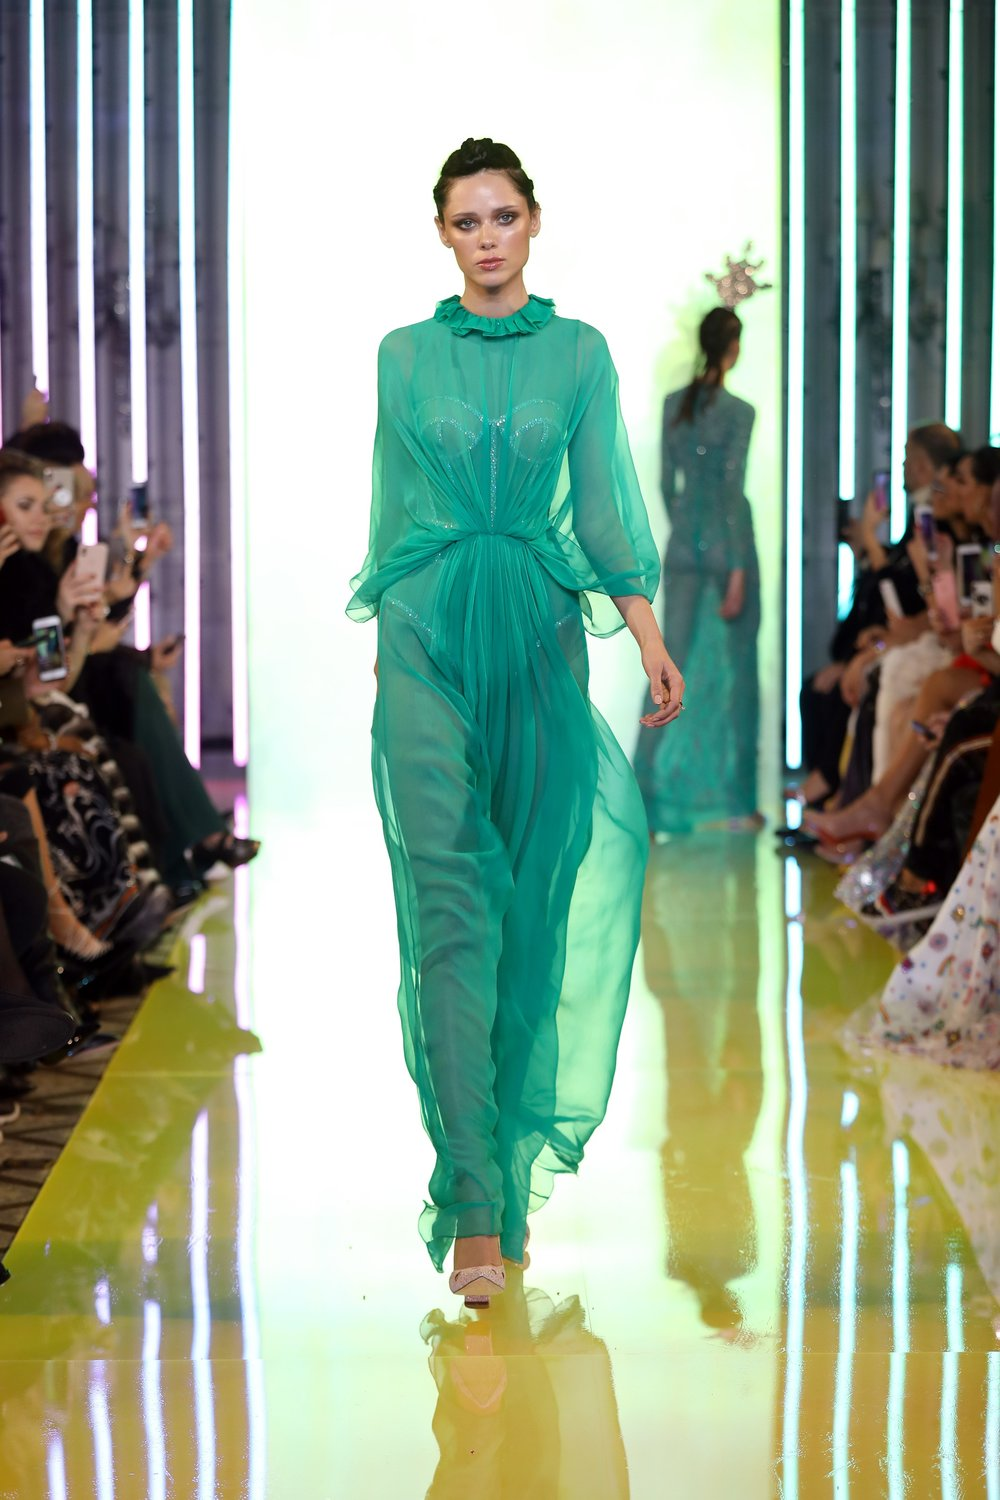 SS19-15- Petrol Green Silk Chiffon Dress Featuring A Bustier Highlighted With Swarovski Stones .jpg